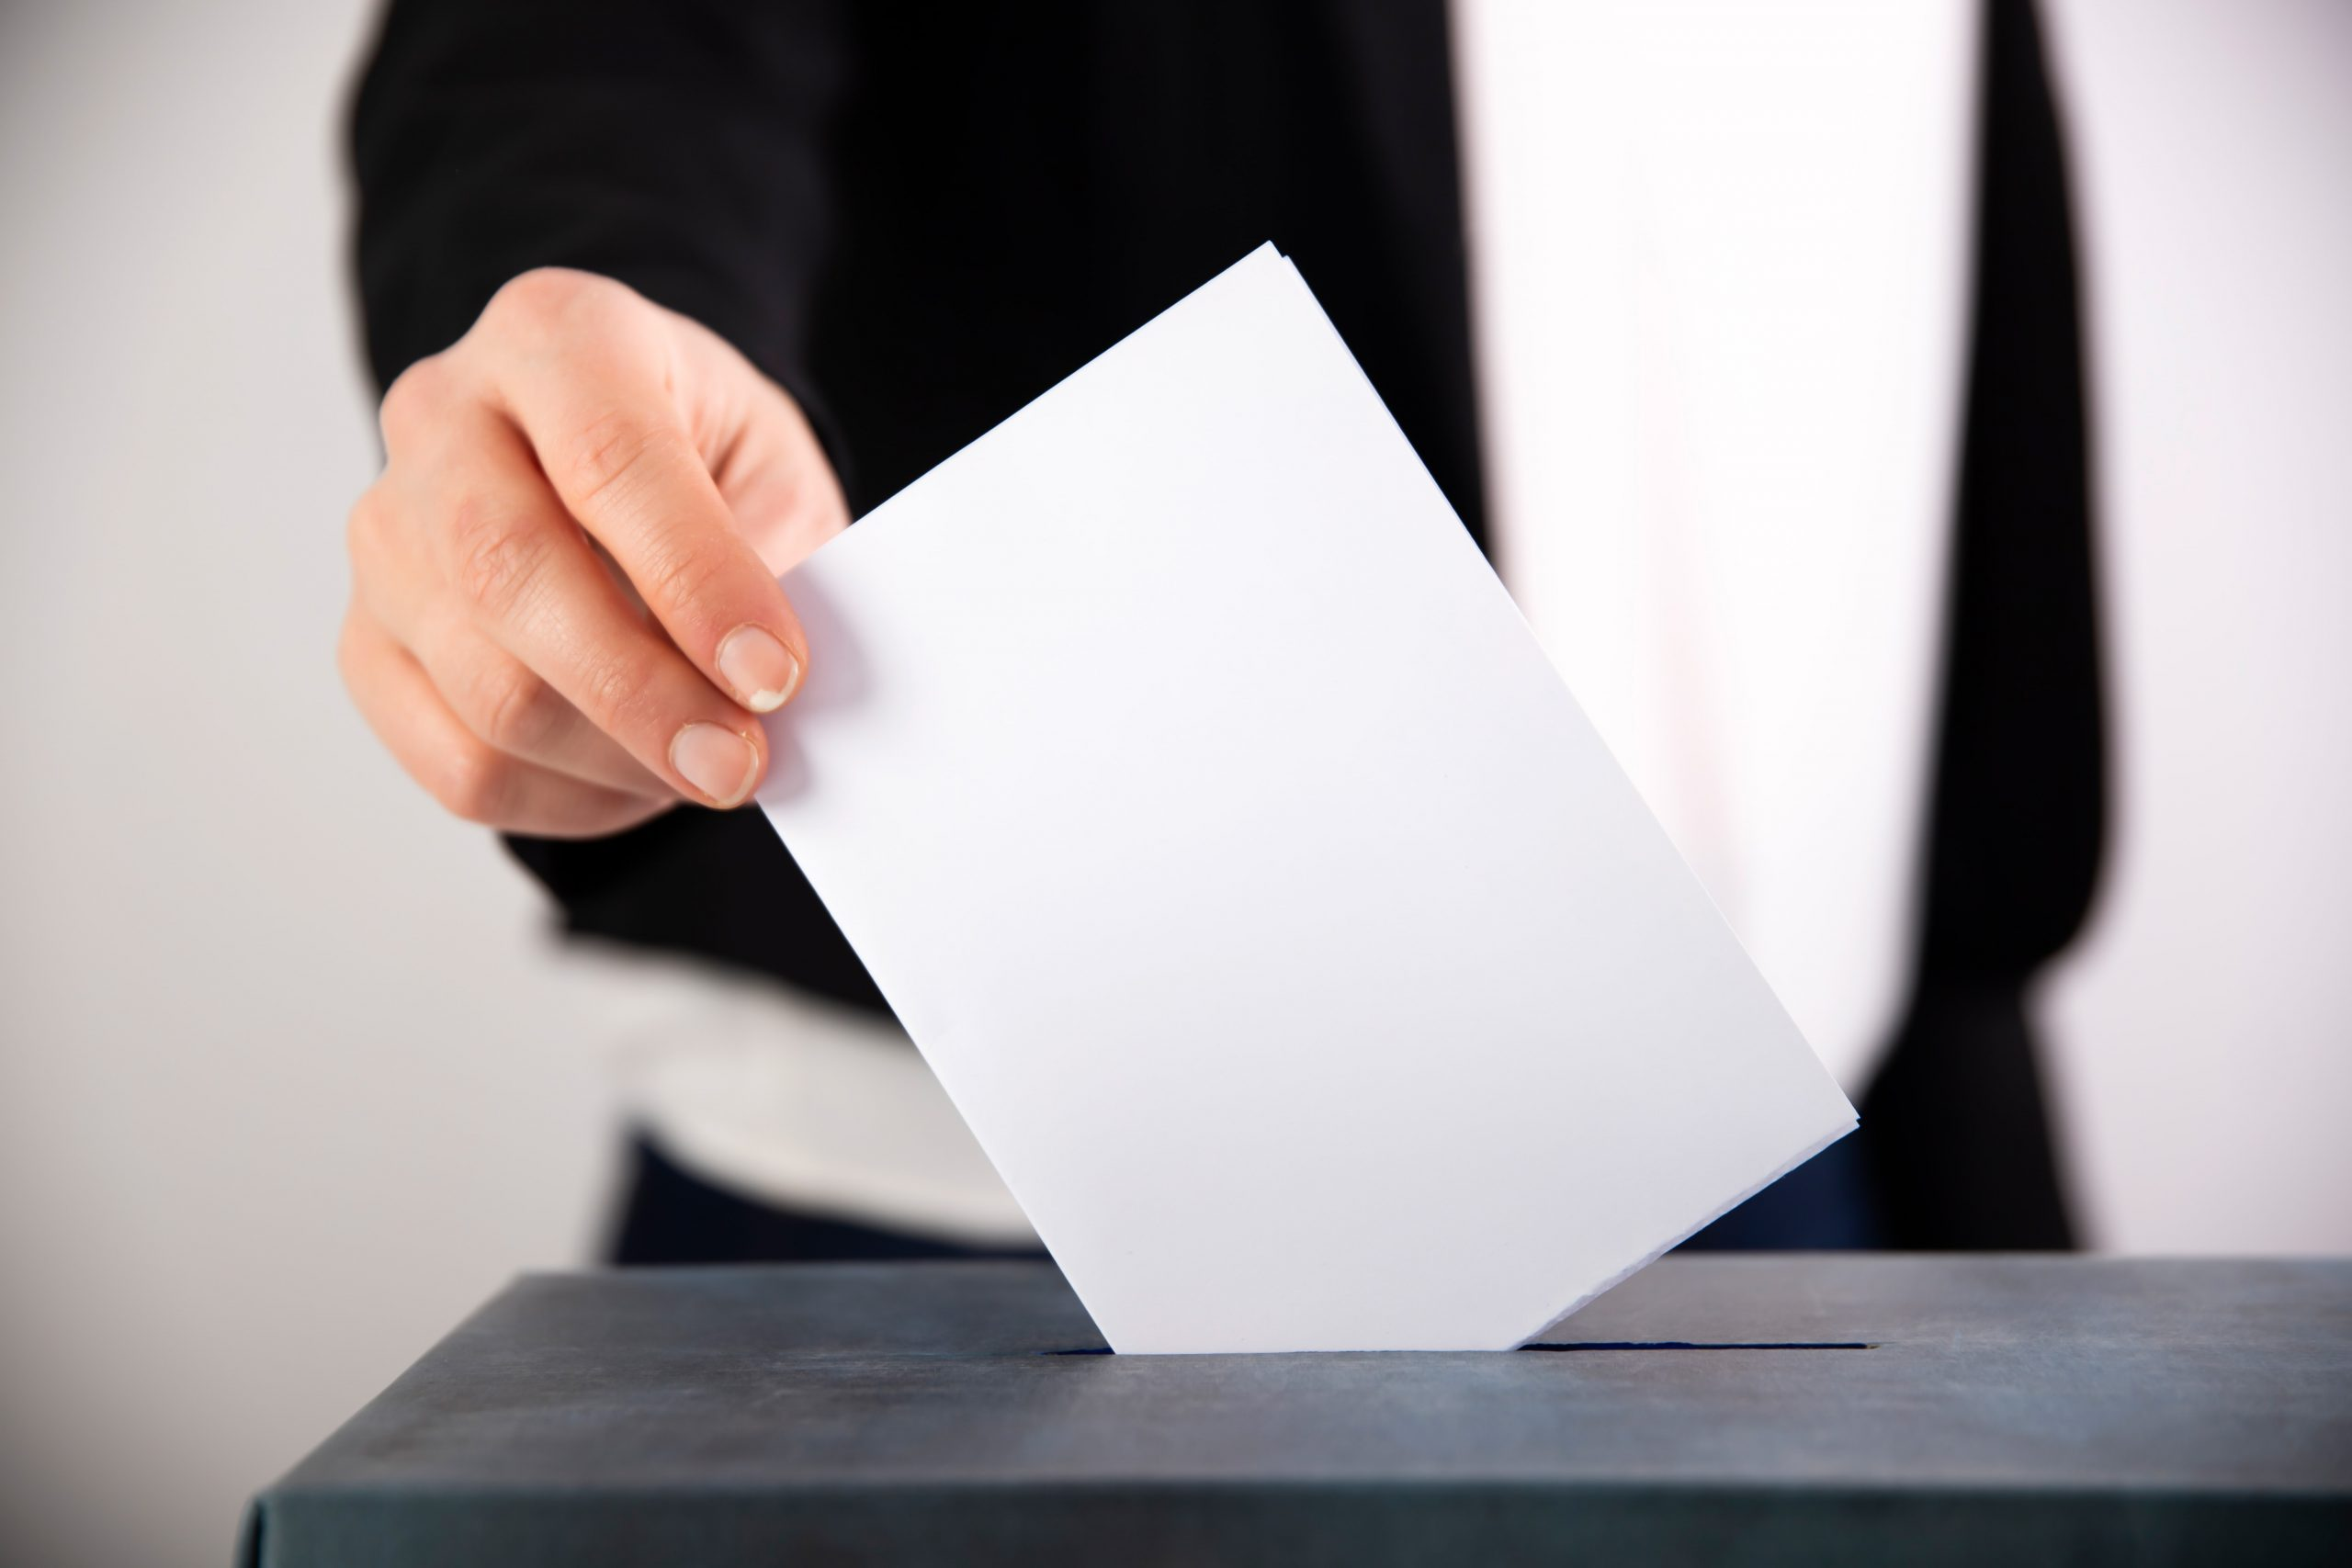 woman-votes-on-election-day-VGMZVT9-min